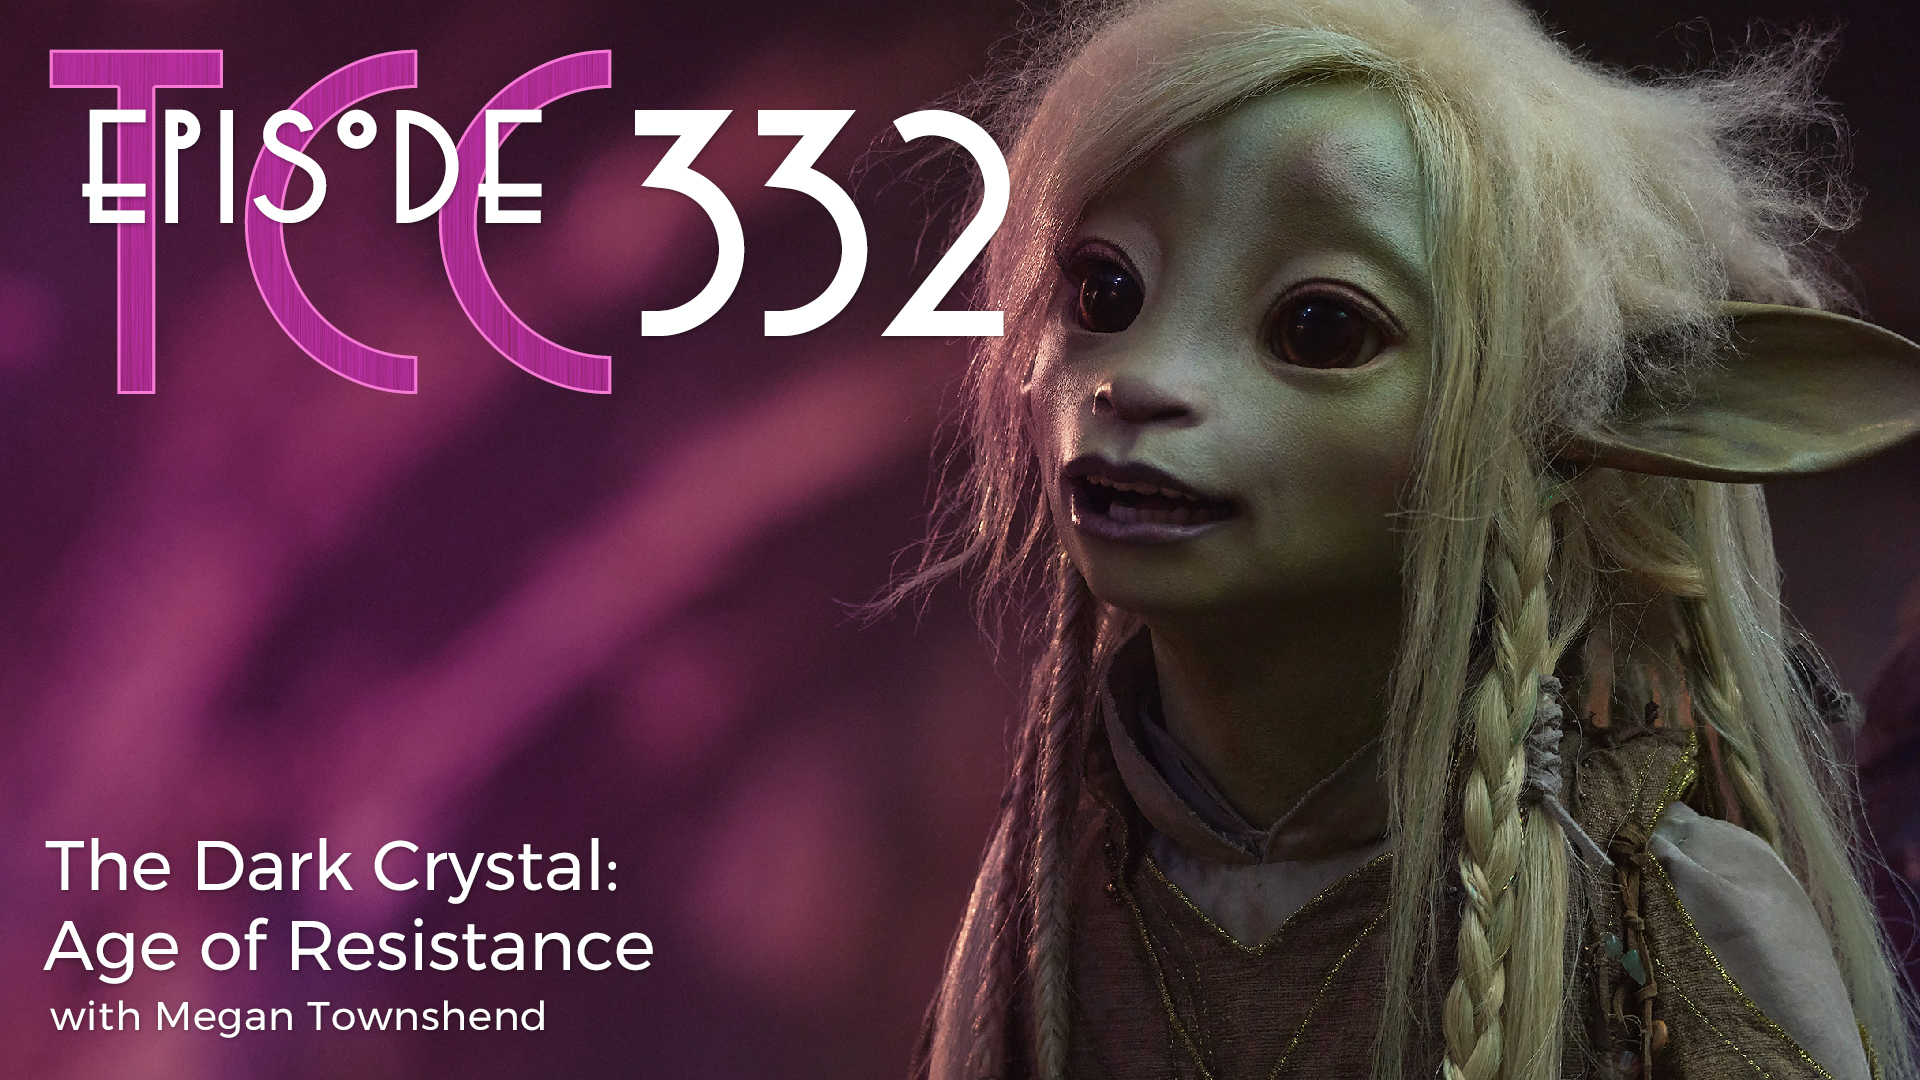 The Citadel Cafe 332: The Dark Crystal: Age of Resistance